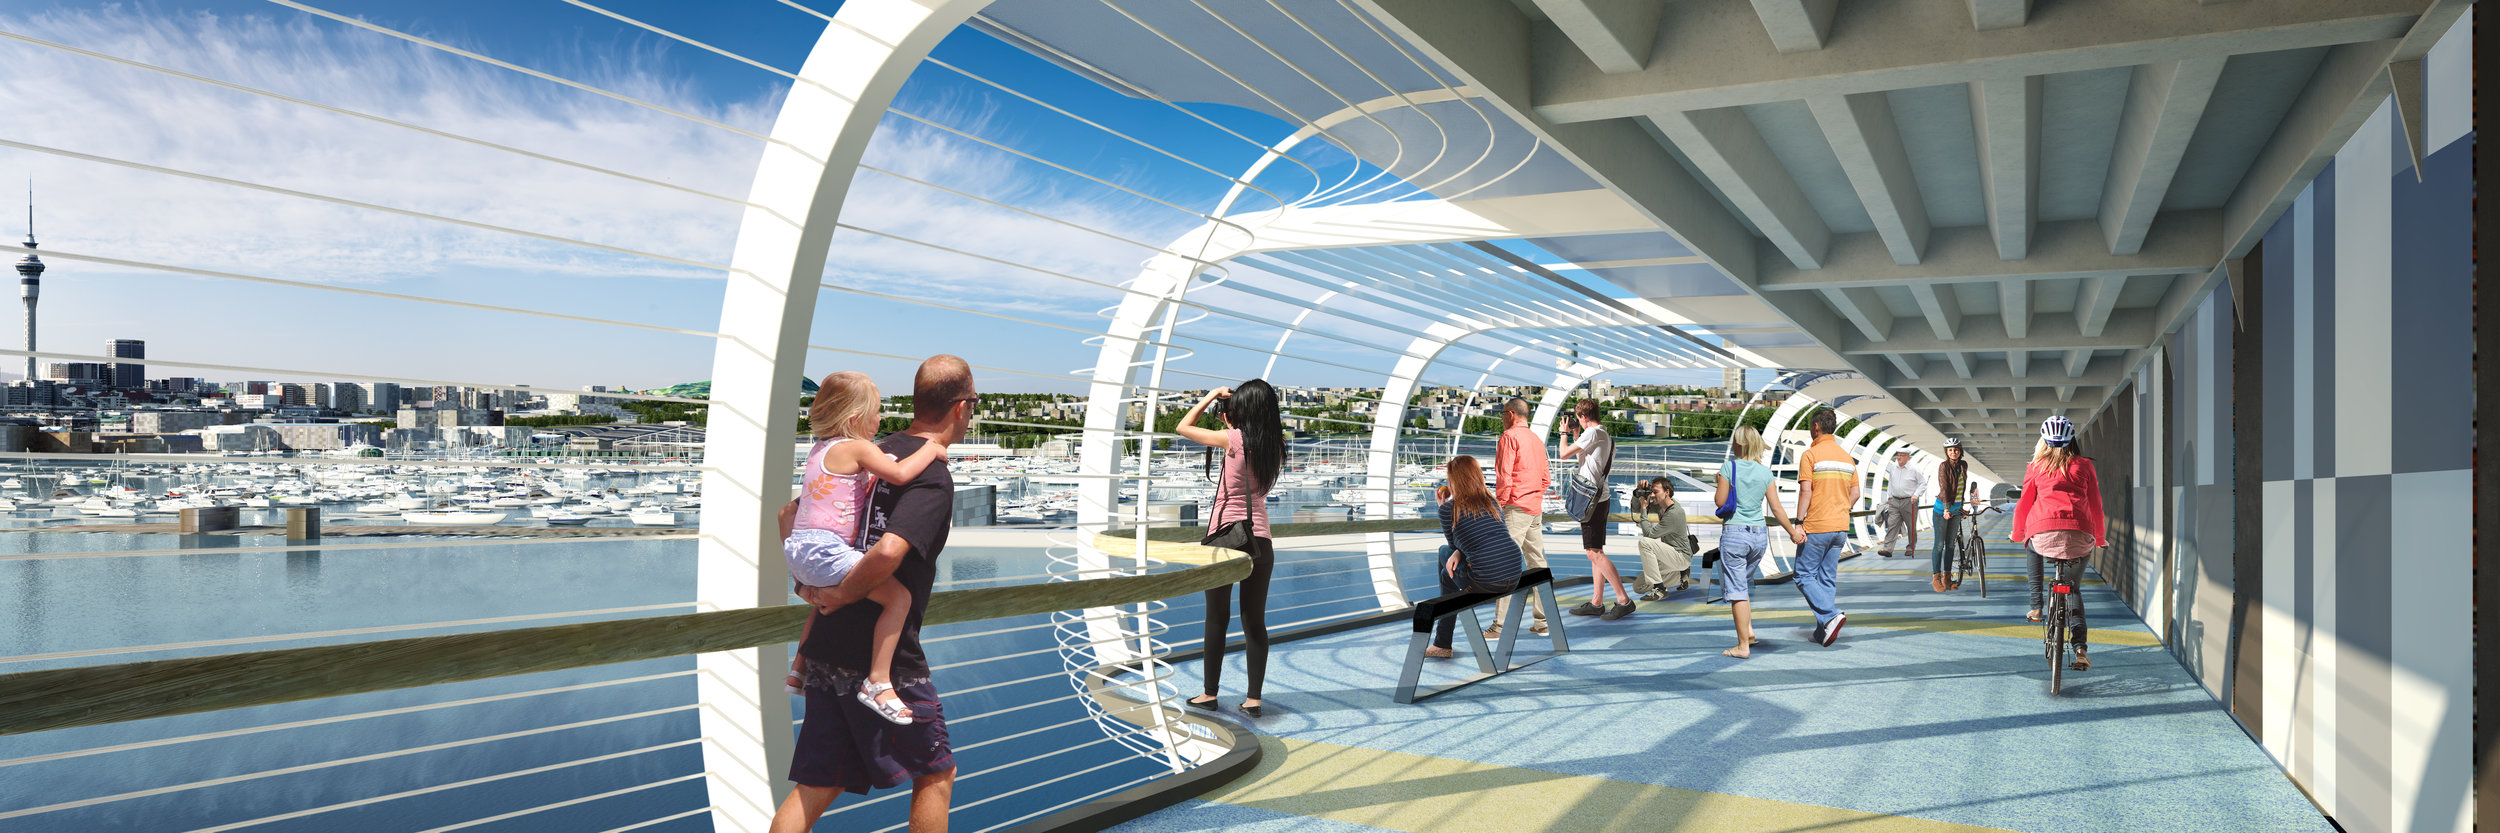 The SkyPath observation deck.  Image credit - Reset Urban Design.